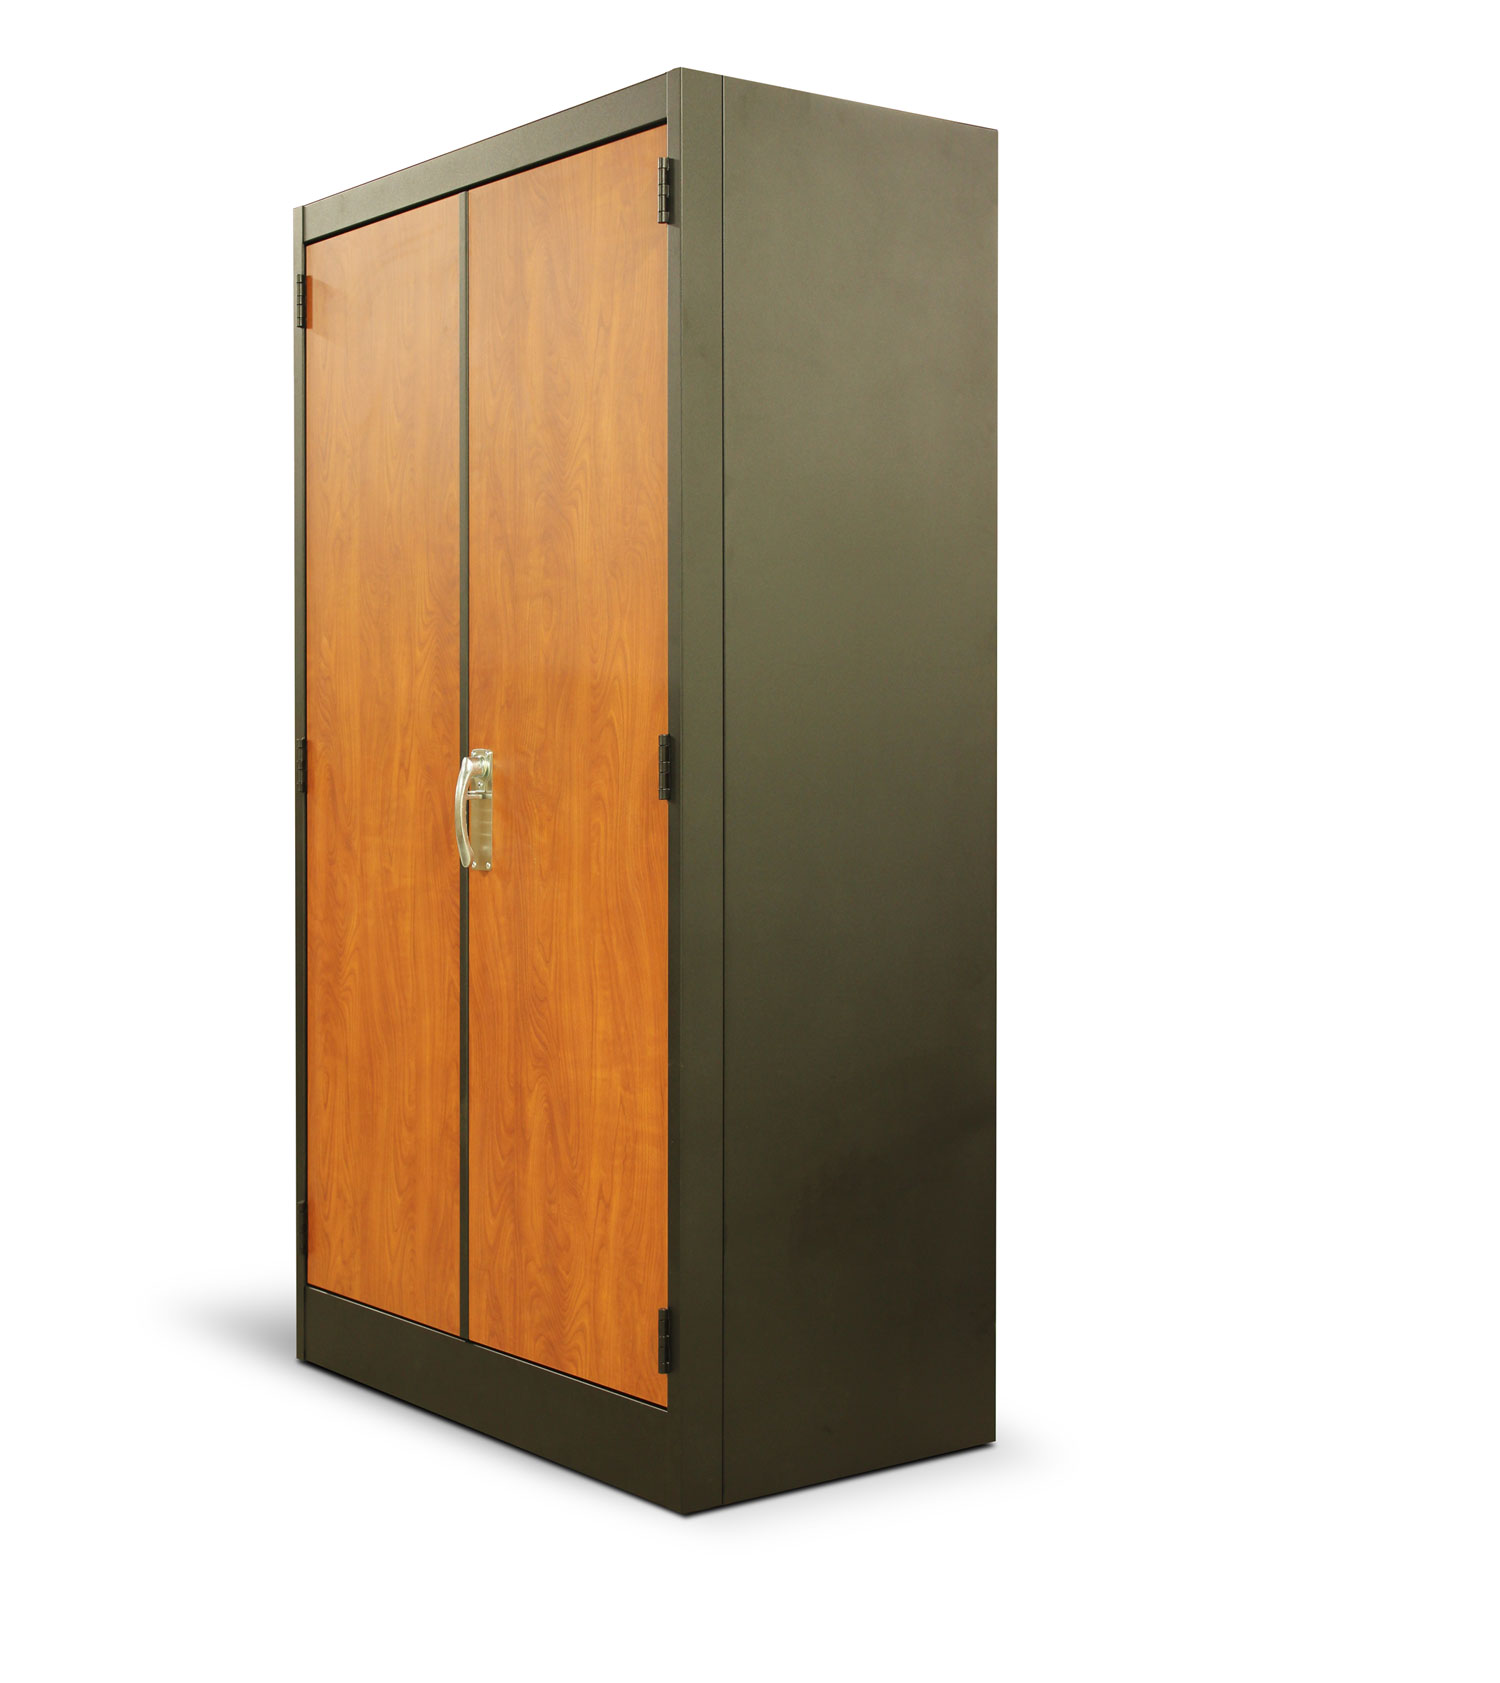 Tower cabinets from Invincible Furniture filing and